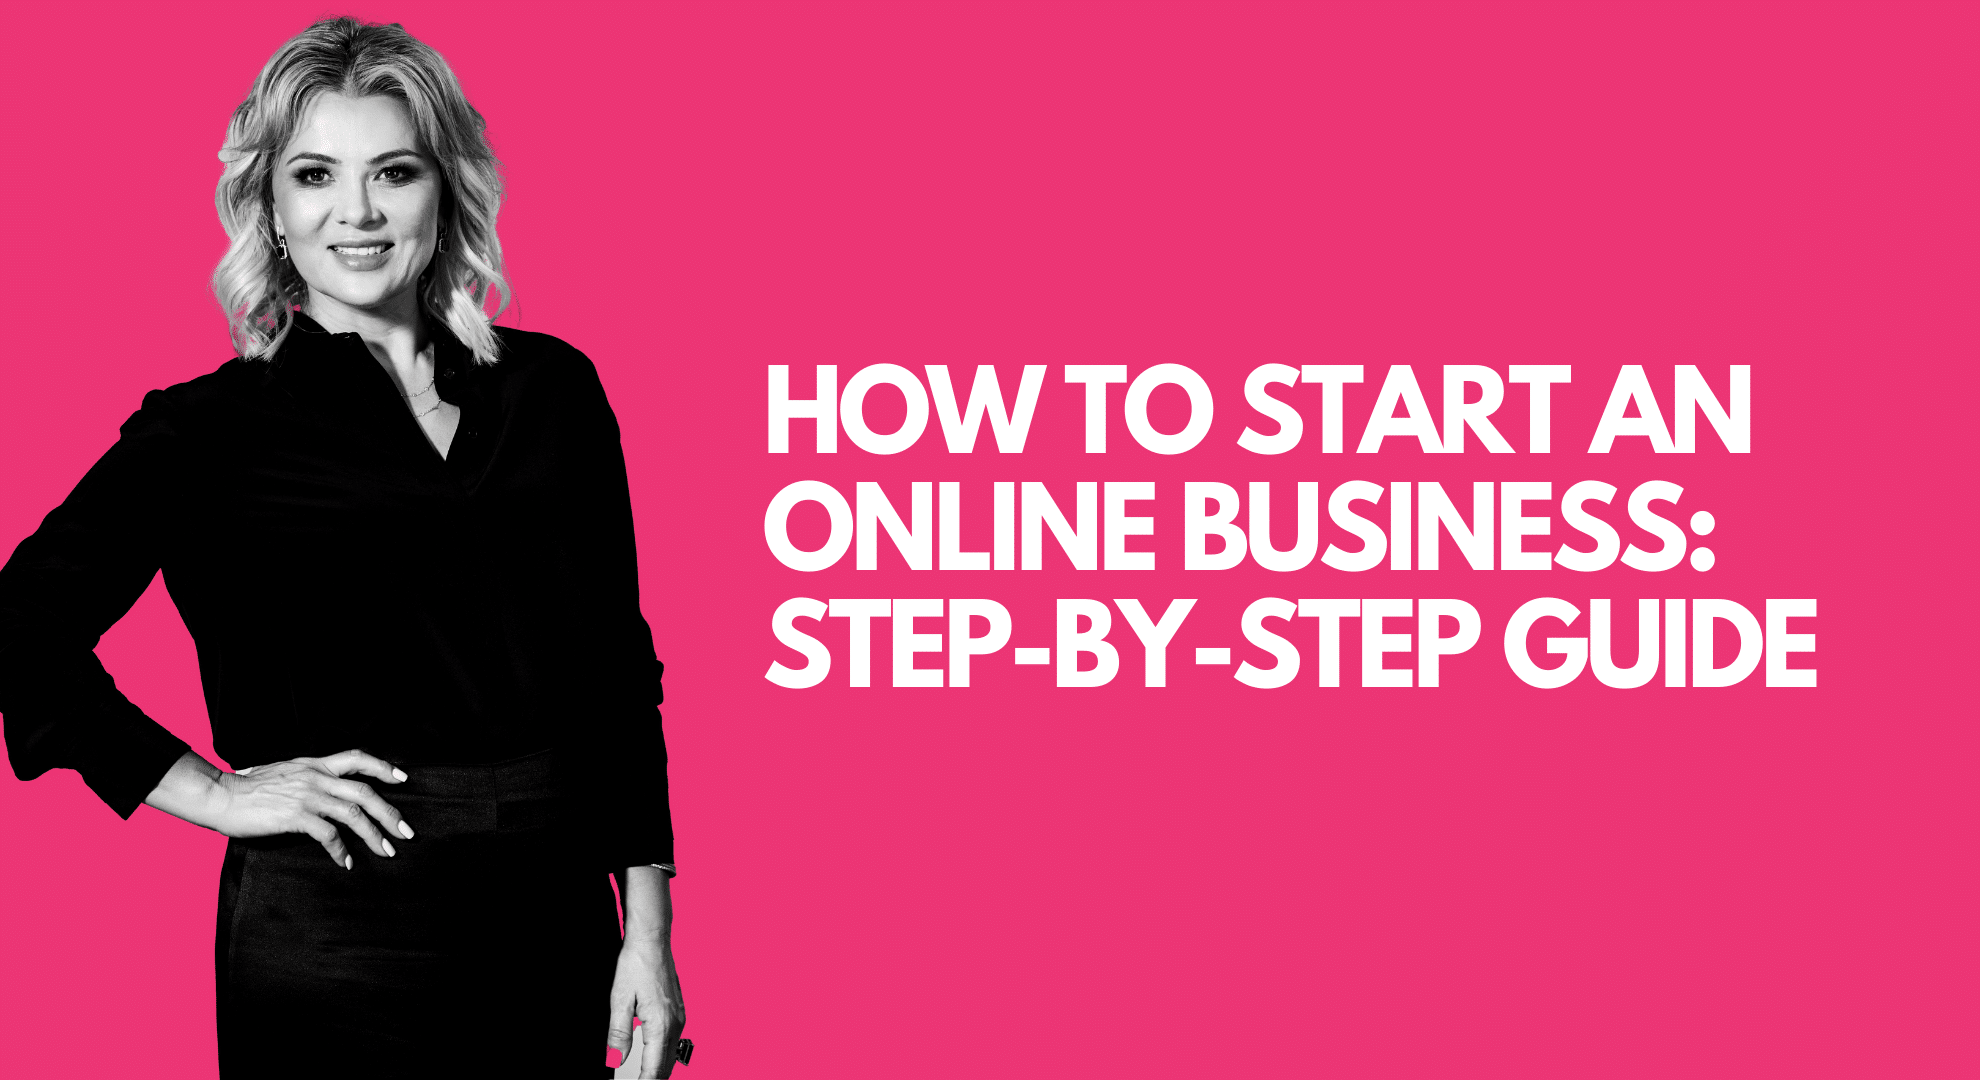 how to start an online business step-by-step guide